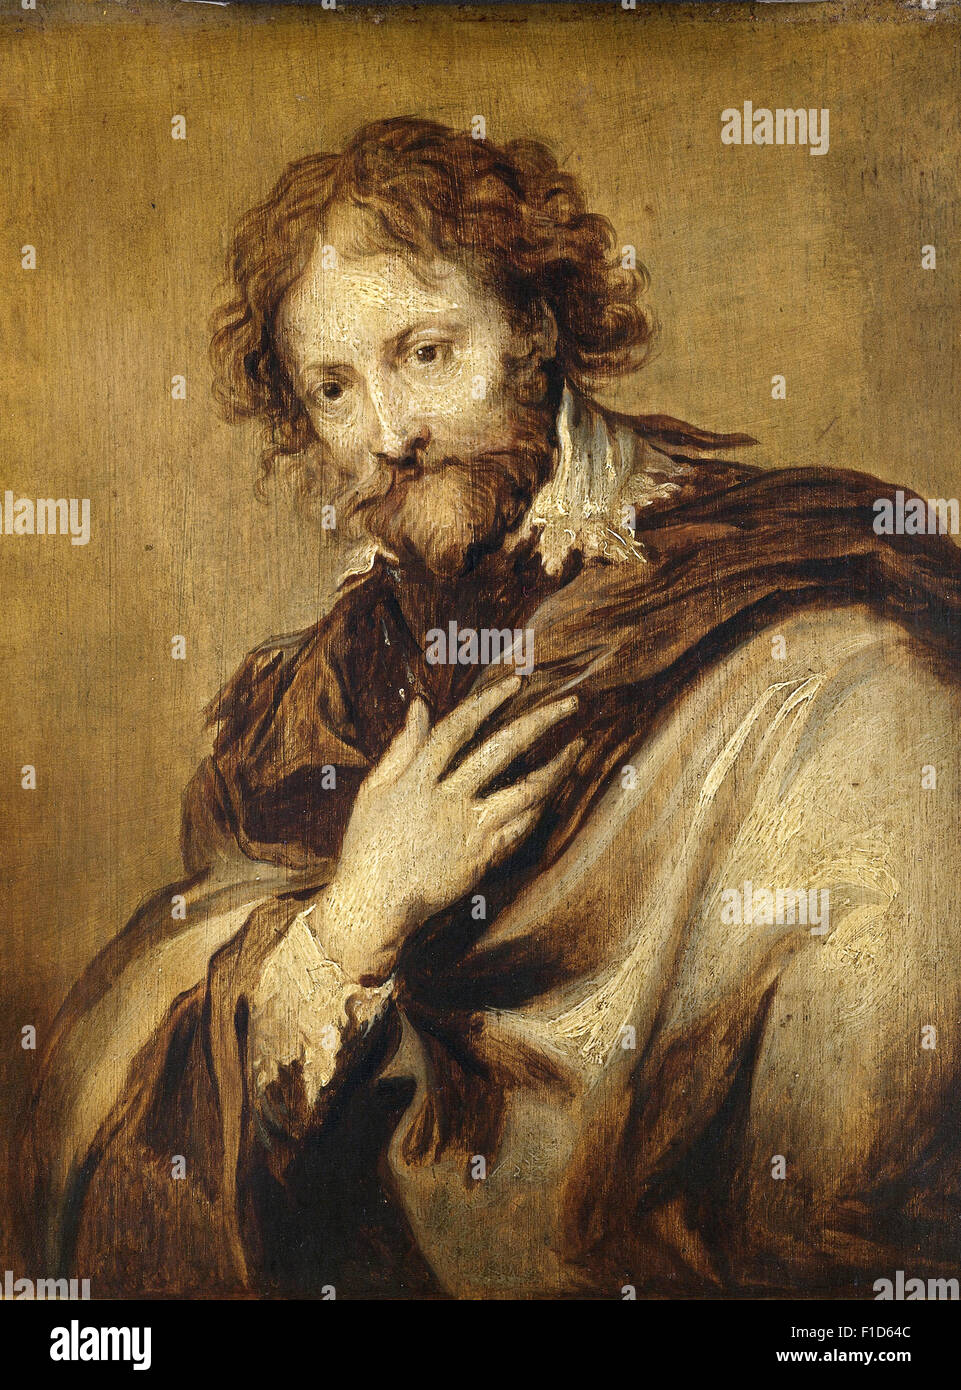 Anthony Van Dyck - Portrait of a Man, identified as Peter Paul Rubens - Stock Image